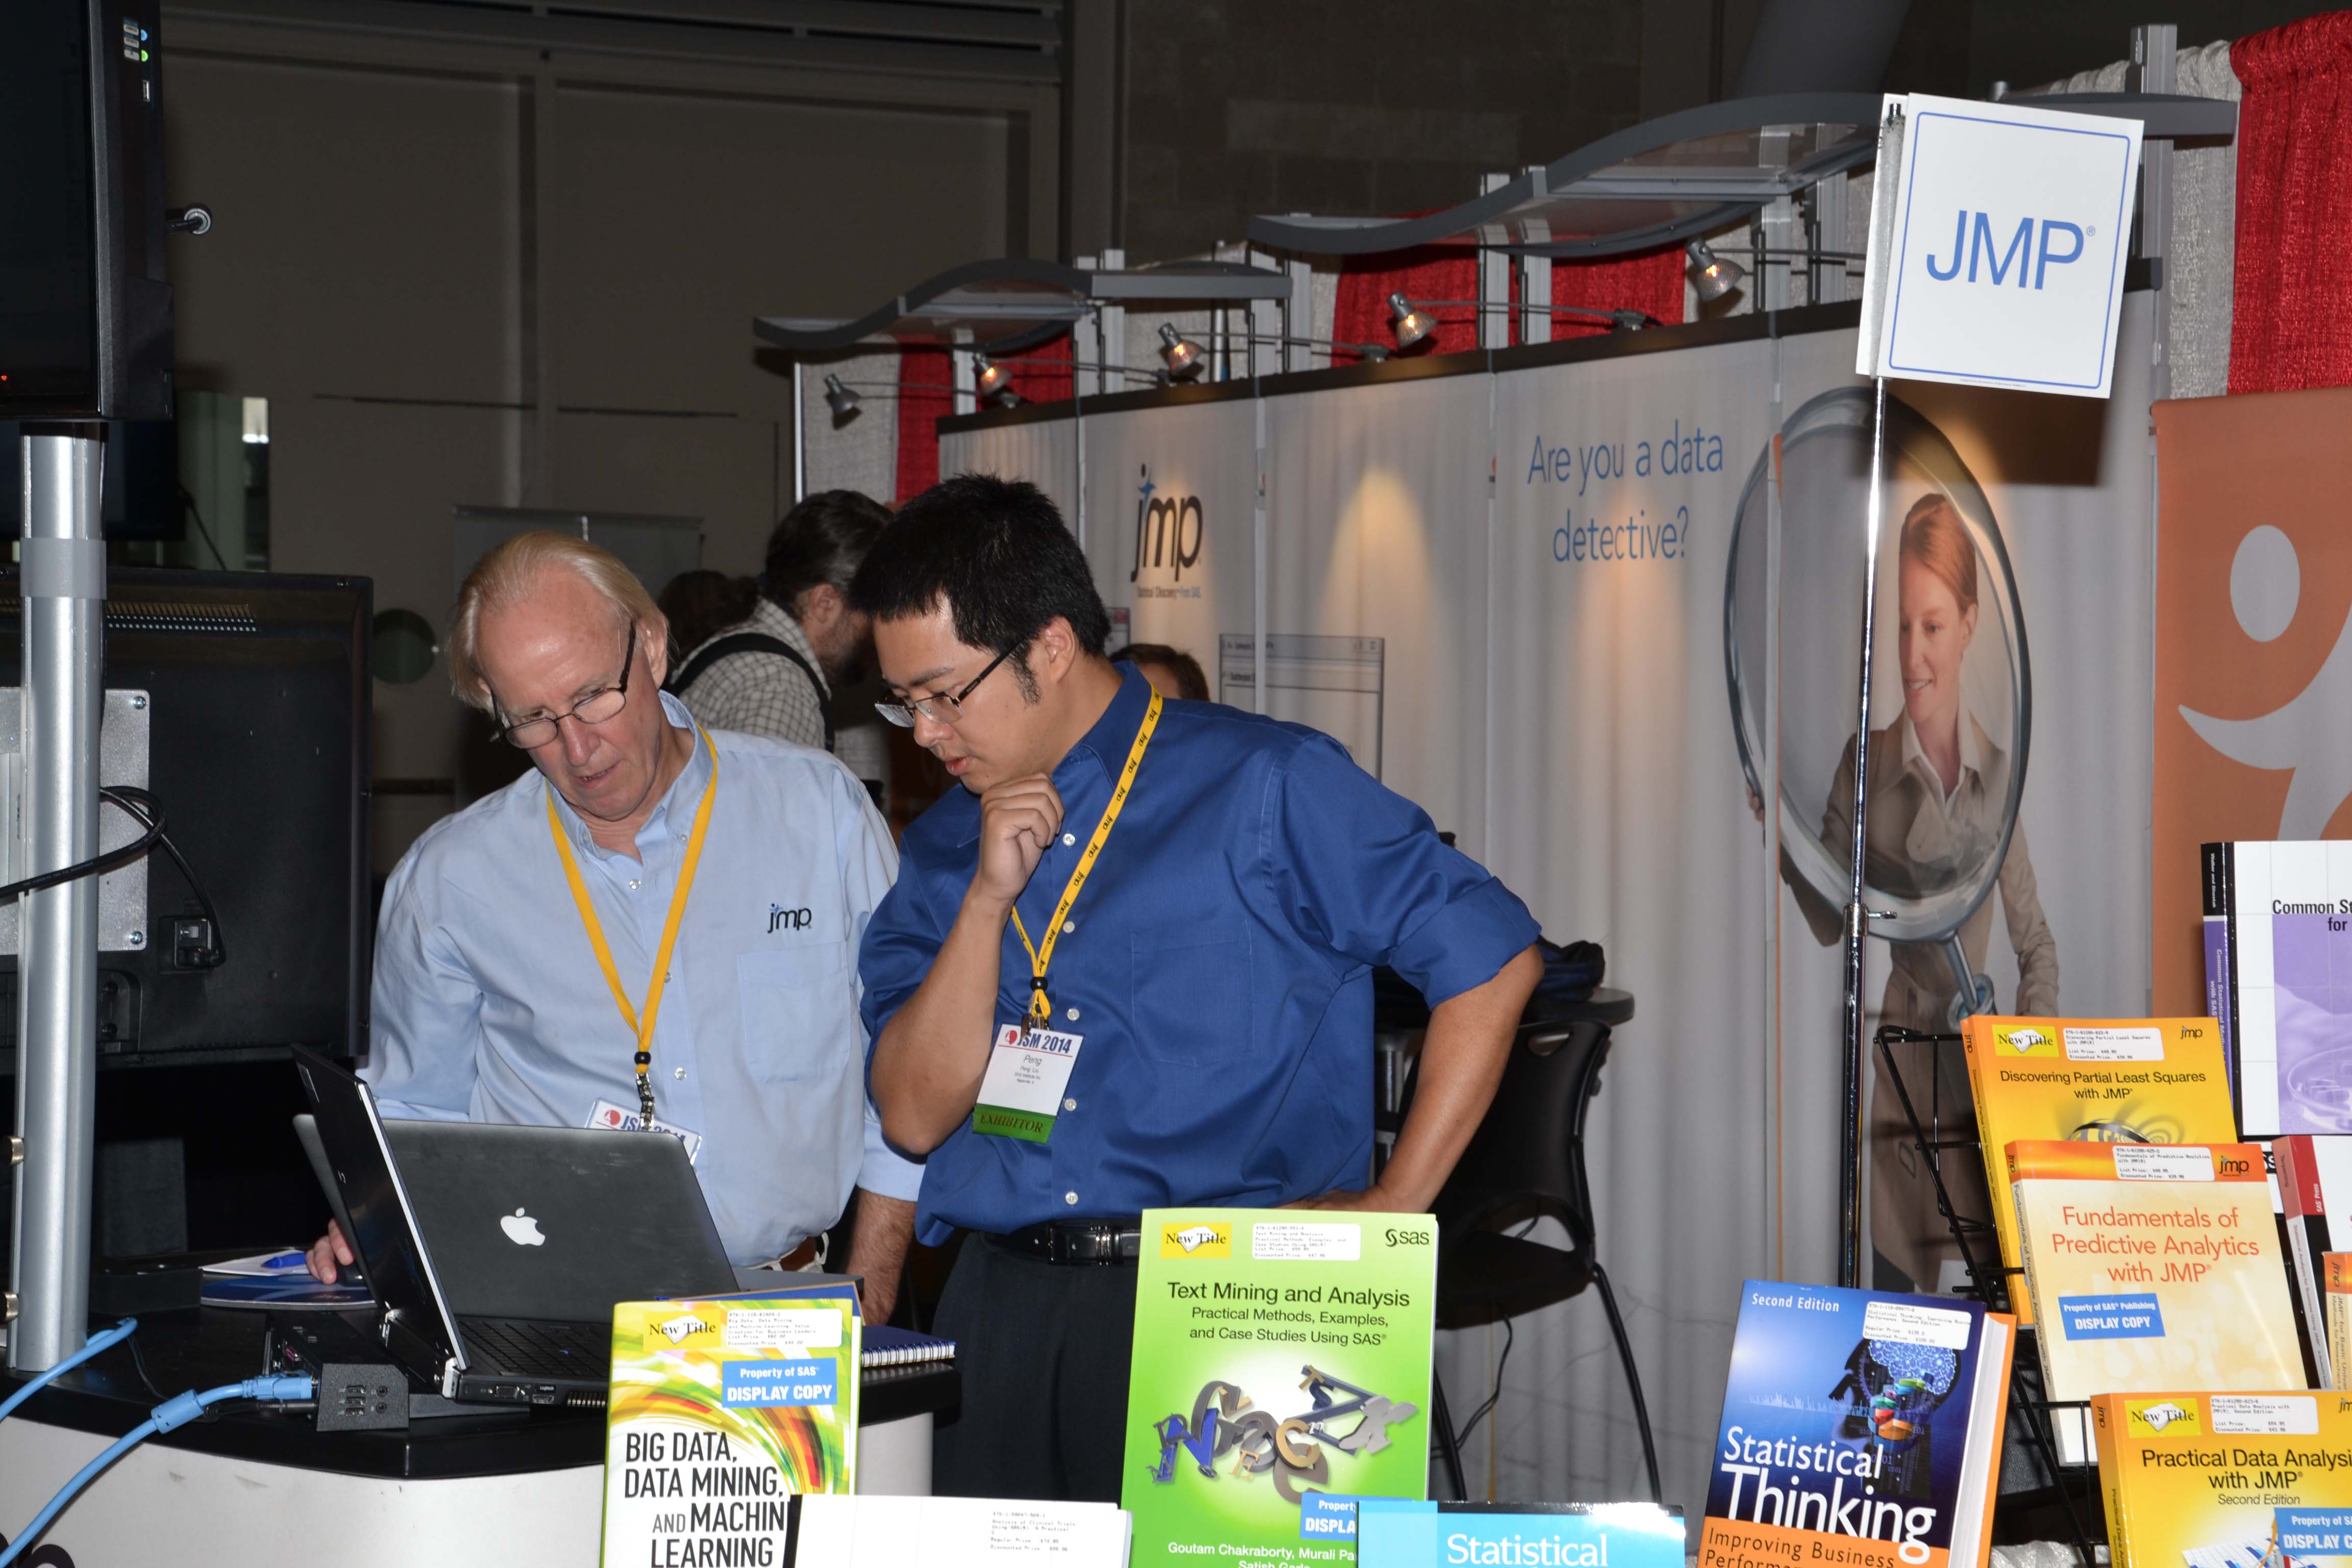 Bradley Jones and Peng Liu at the JMP booth in the exhibit hall